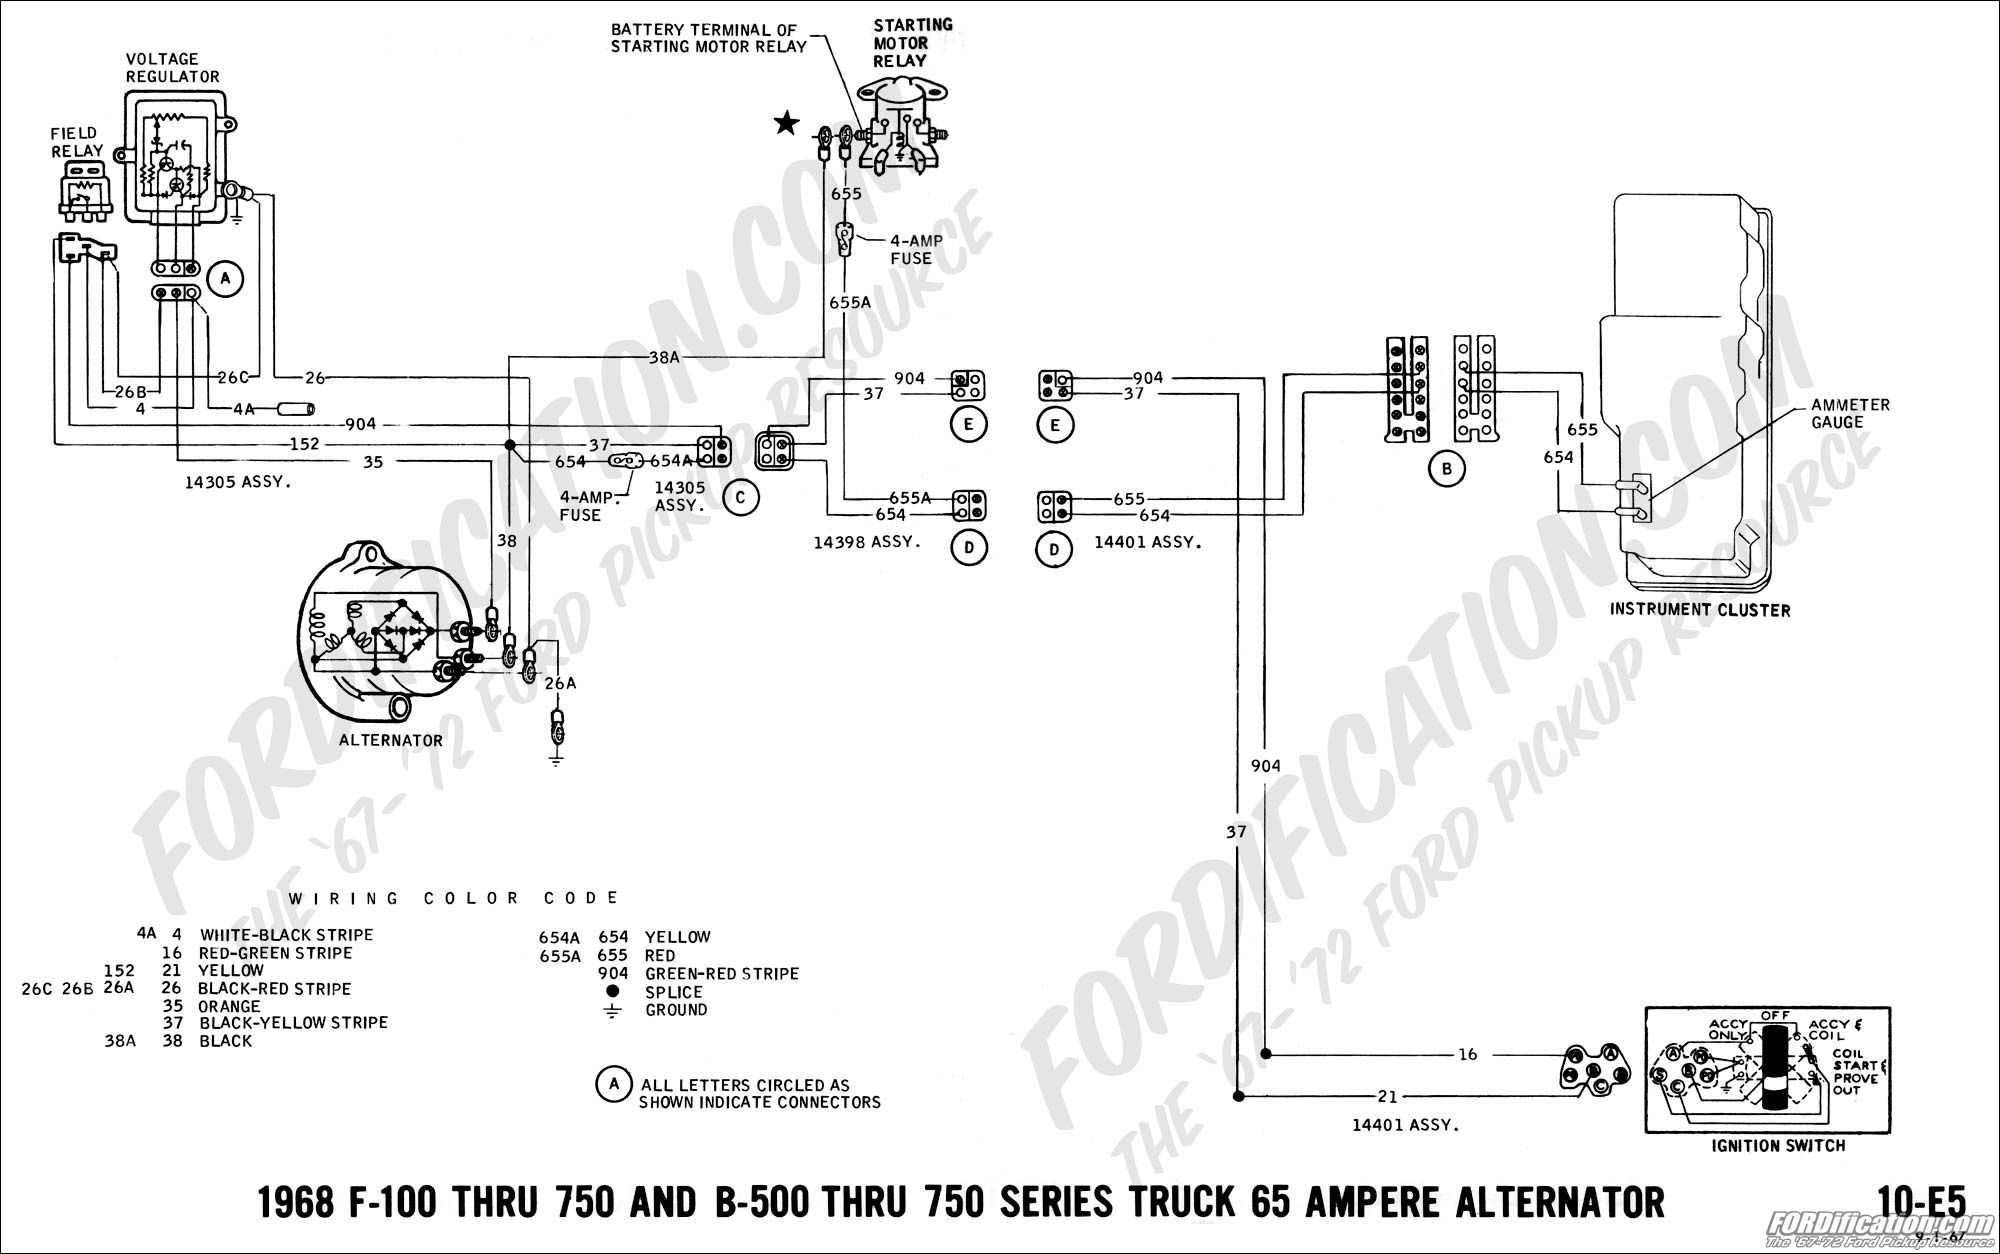 small resolution of 68 ford alternator wiring diagram 76 ford f150 diagram drawings ford truck trailer wiring diagram